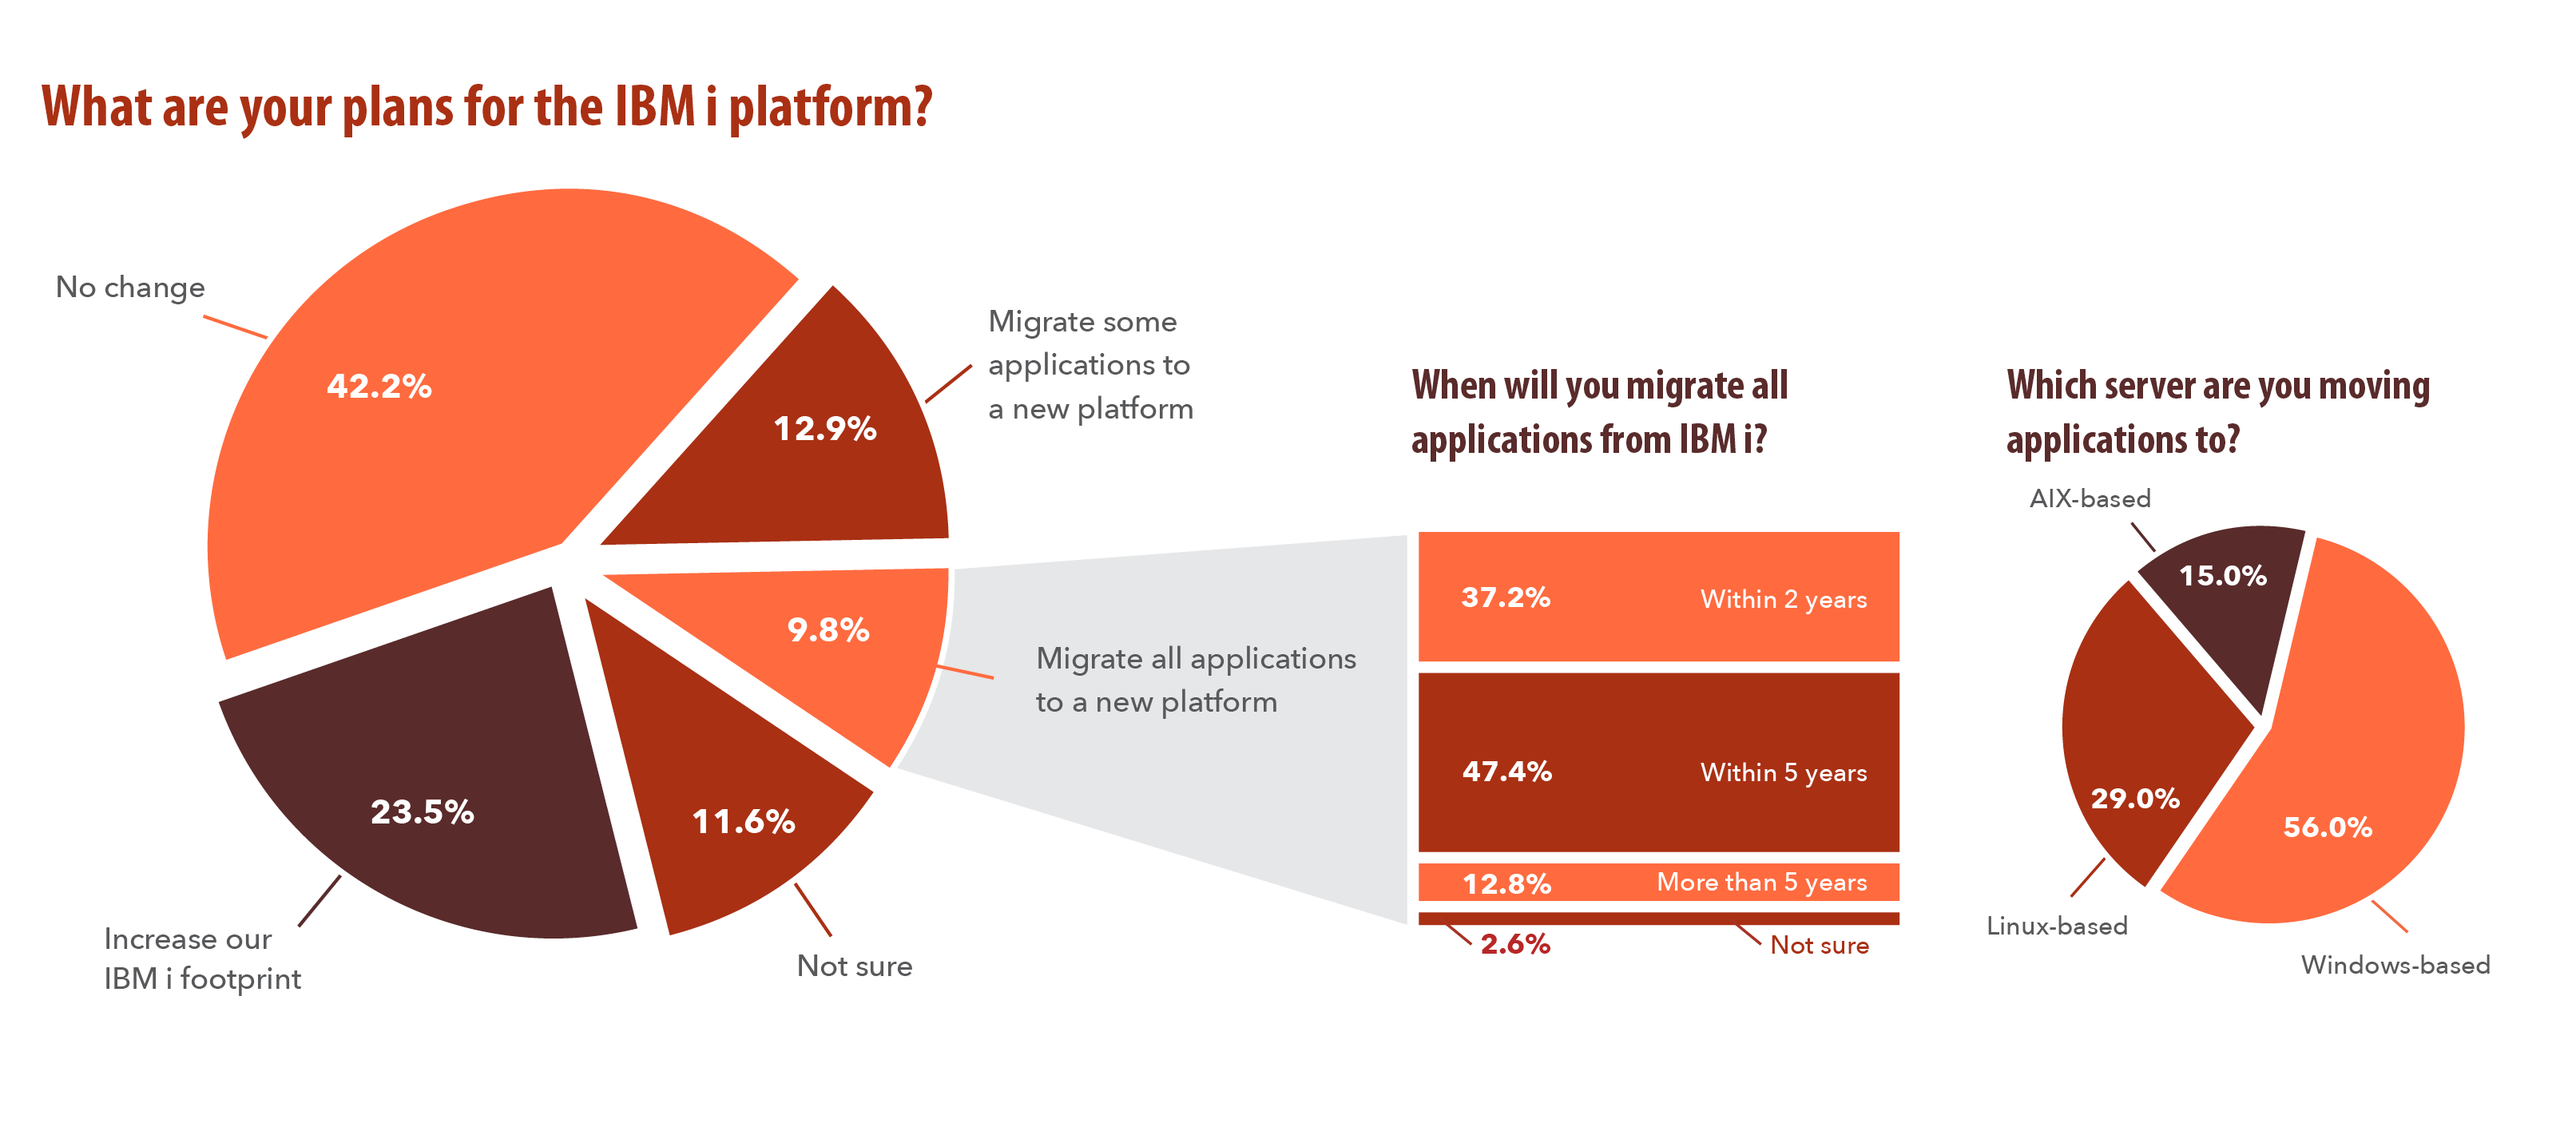 Plans for the IBM i Platform - 2018 survey